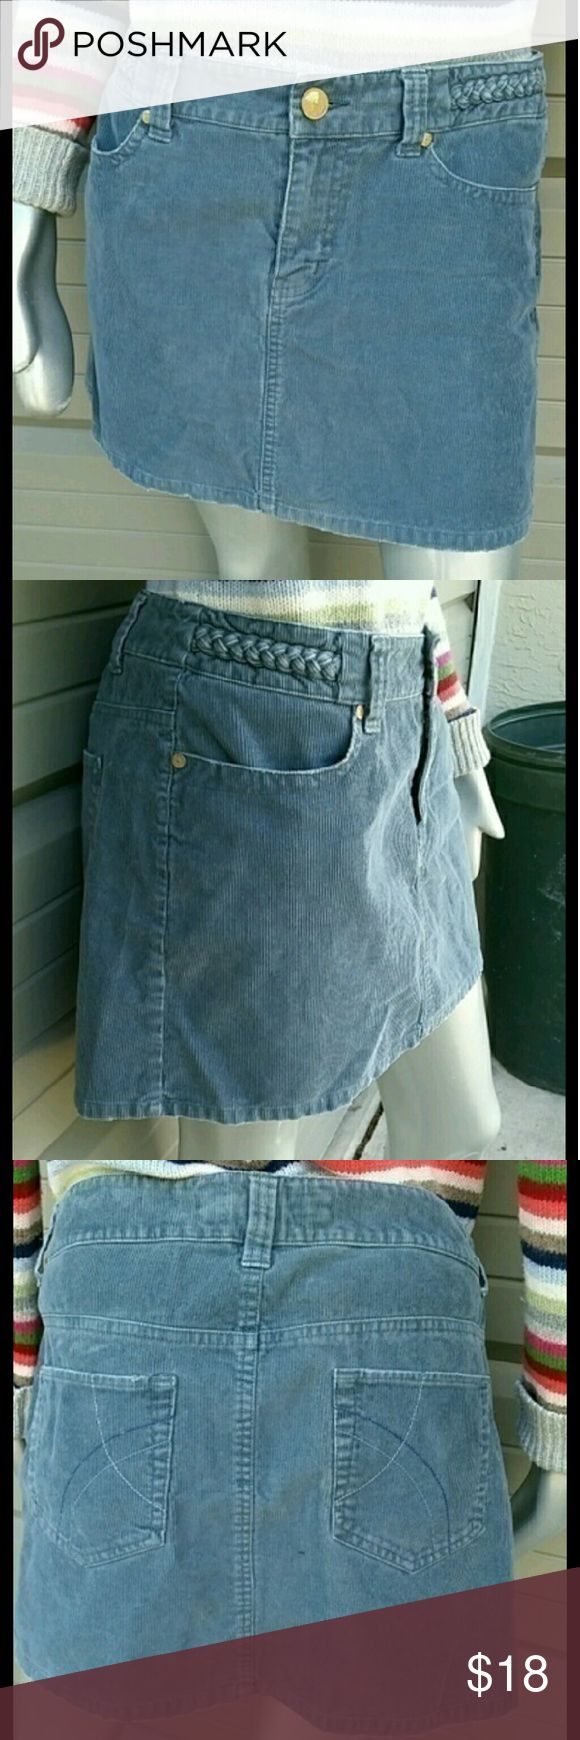 Fossil Blue Corduroy Hipster Skirt Brand Fossil Size 10 100%Cotton  Great condition  Tradition Style Hipster Skirt with Pockets Zipper Fly Front. Had accents braided waistband.  Cute to mix and match for Fall wear.  Bundles available with discounts Fossil Skirts Mini